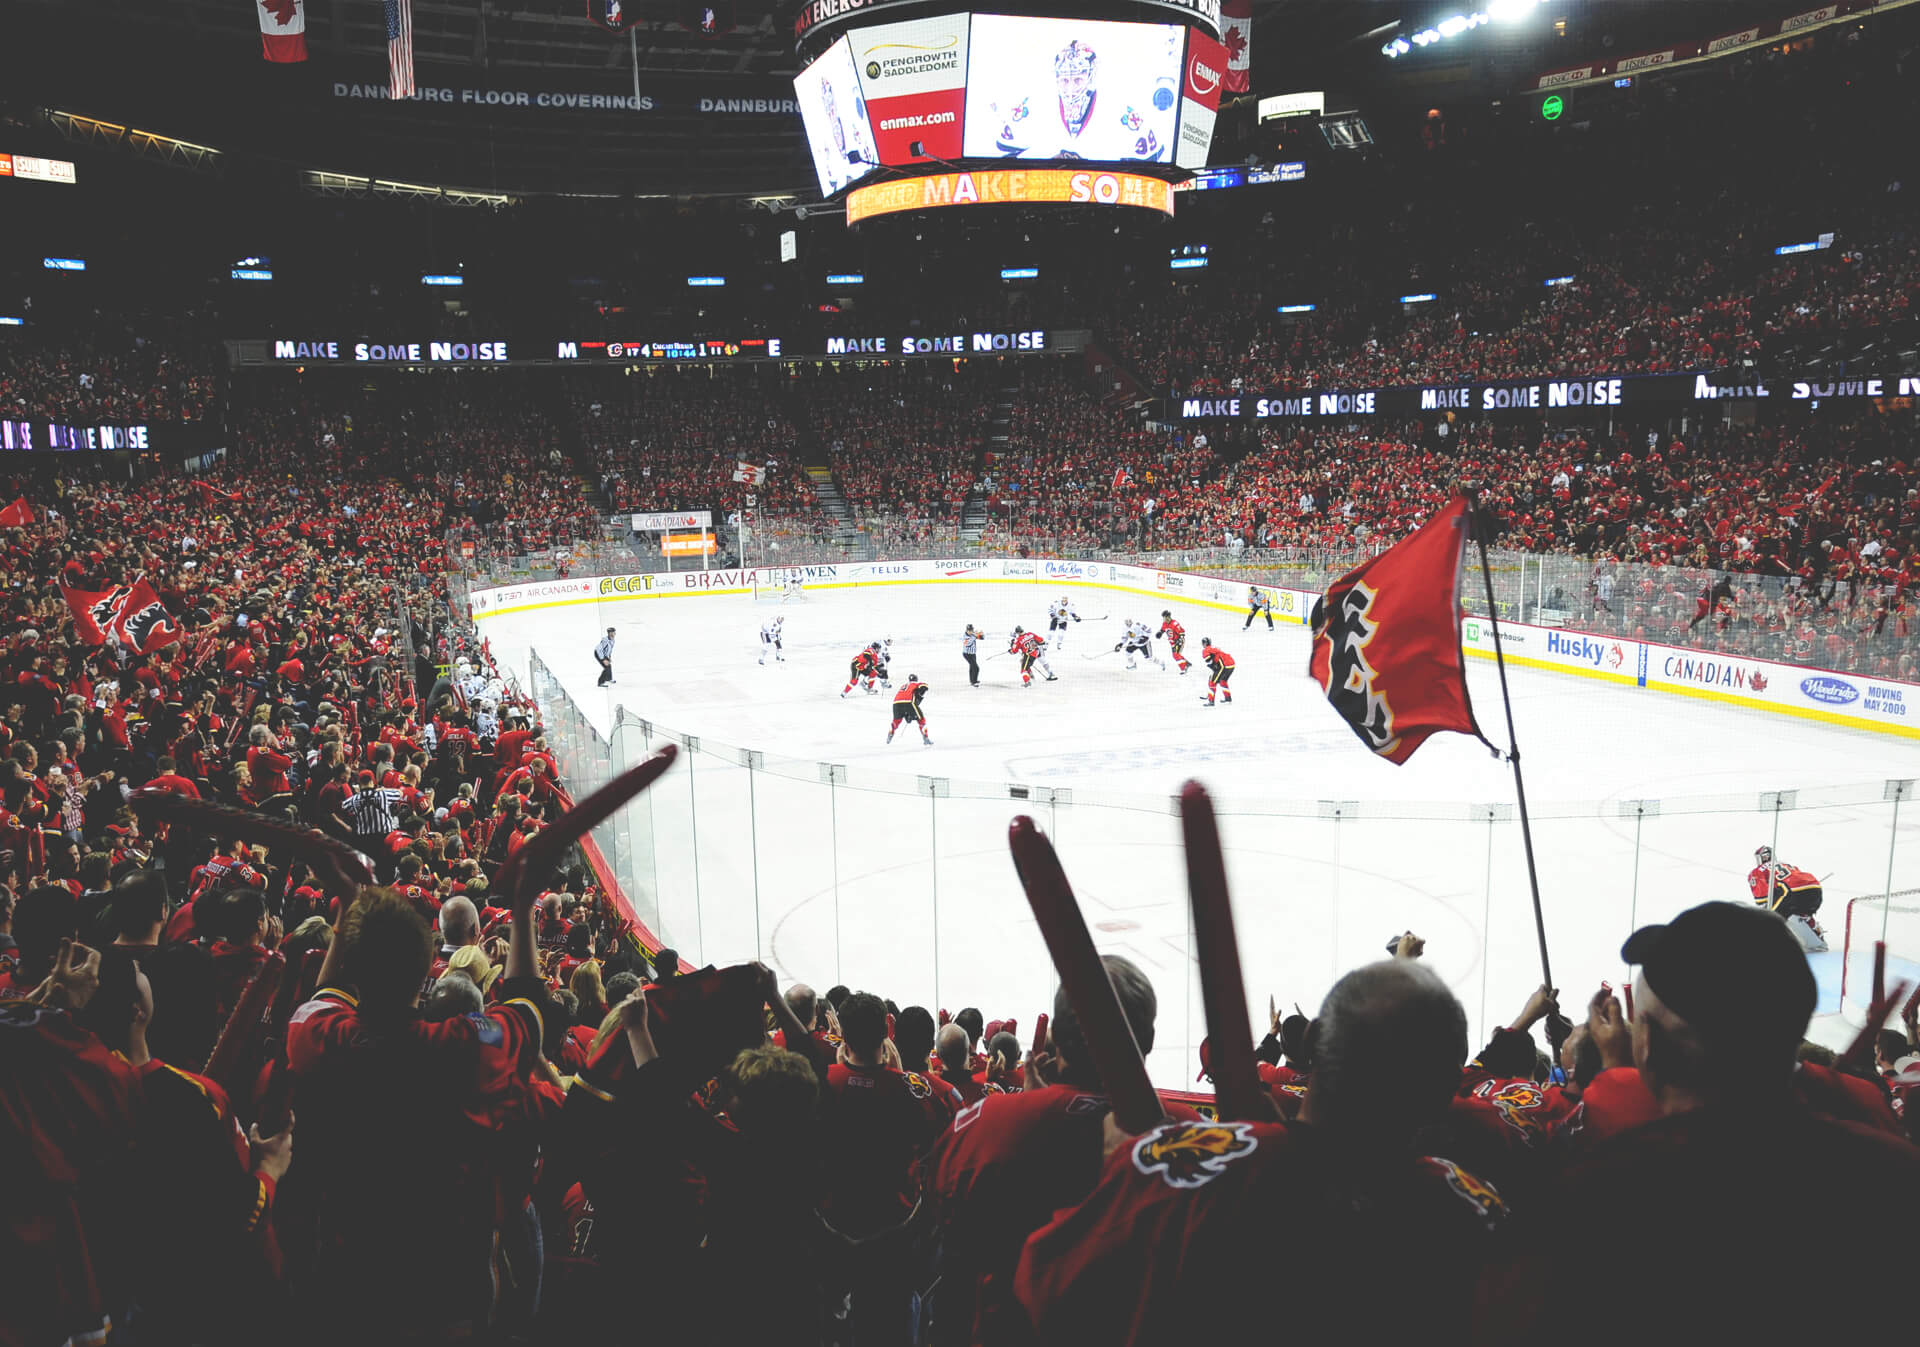 Feel the energy of the C of Red with the Calgary Flames at the Scotiabank Saddledome